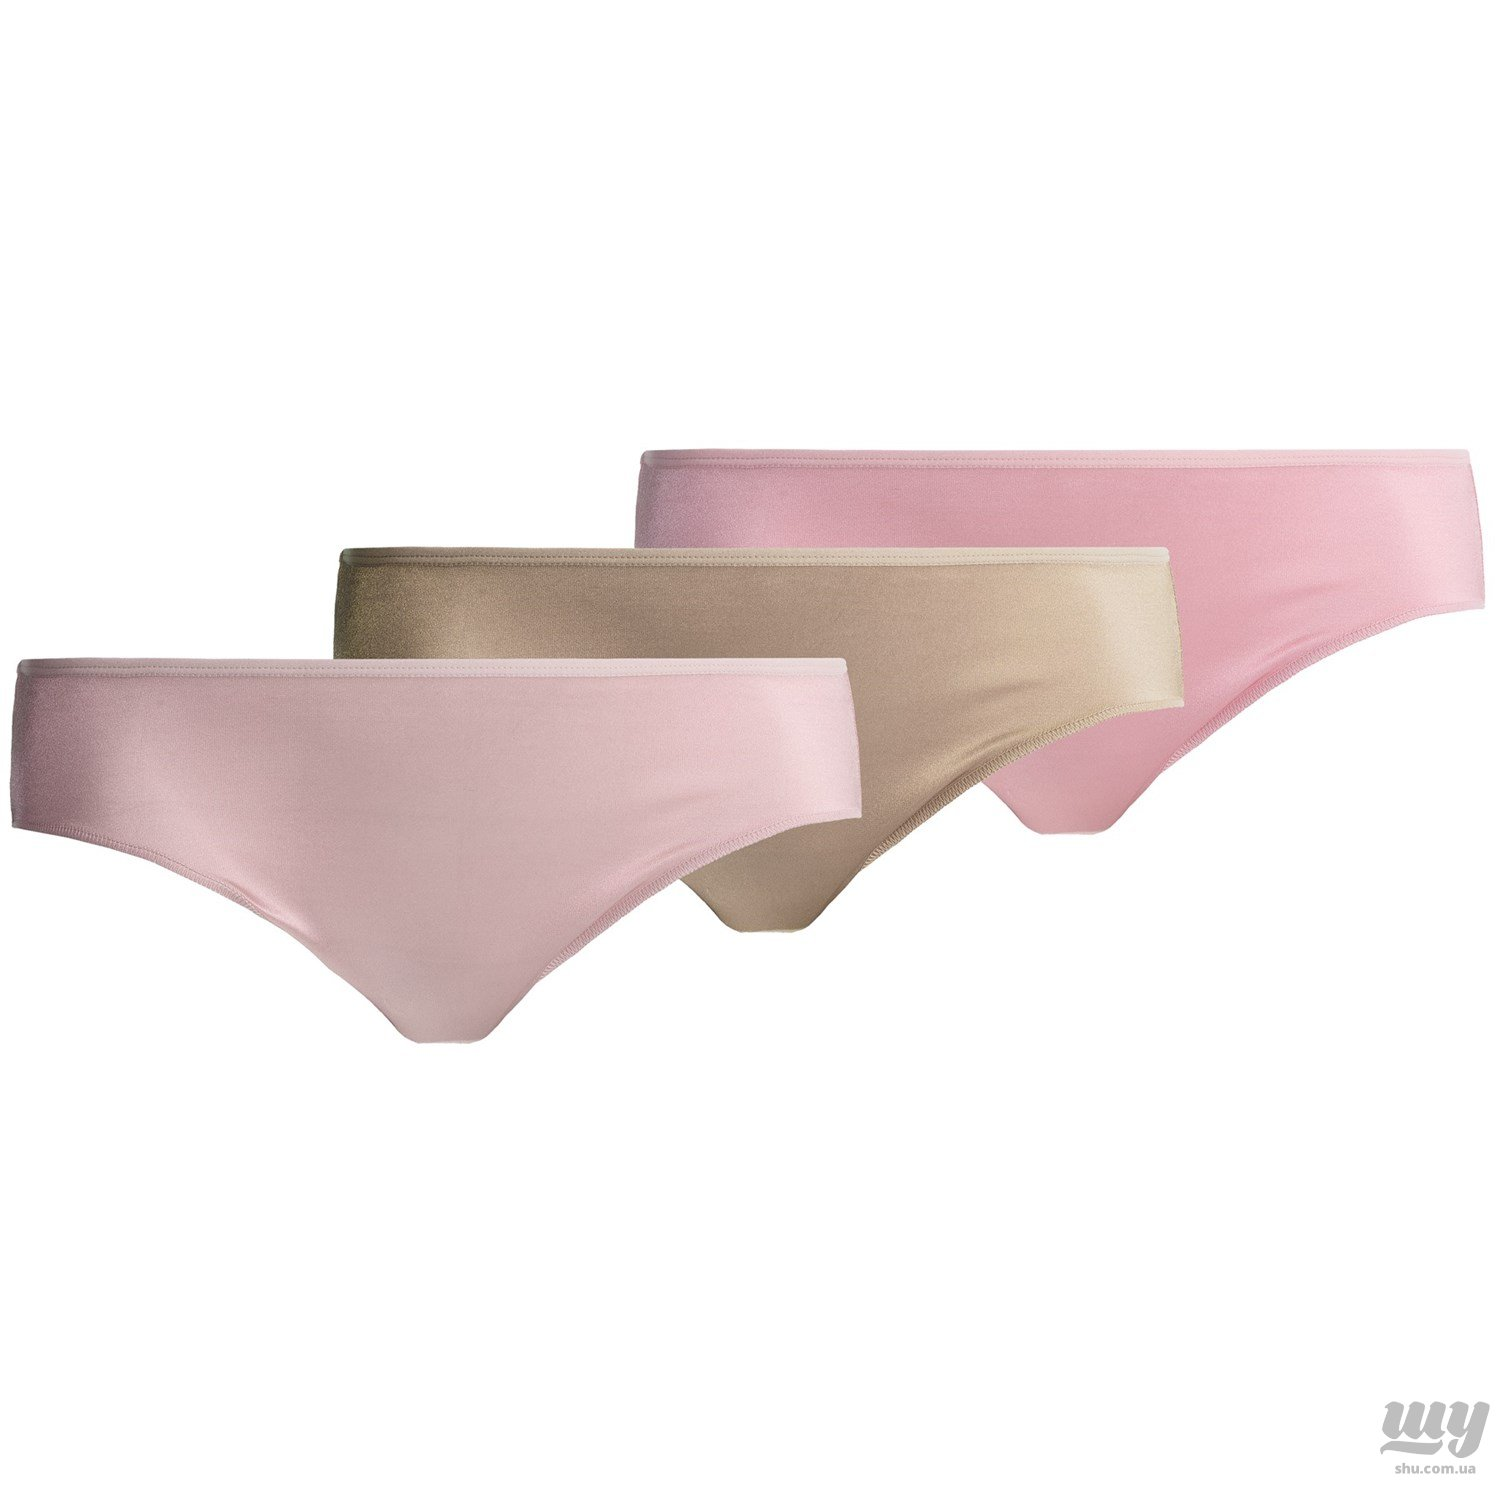 hanes-satin-stretch-hipster-panties-3-pack-for-women-in-pink-nude-light-pink~p~8632j_01~1500.2.jpg